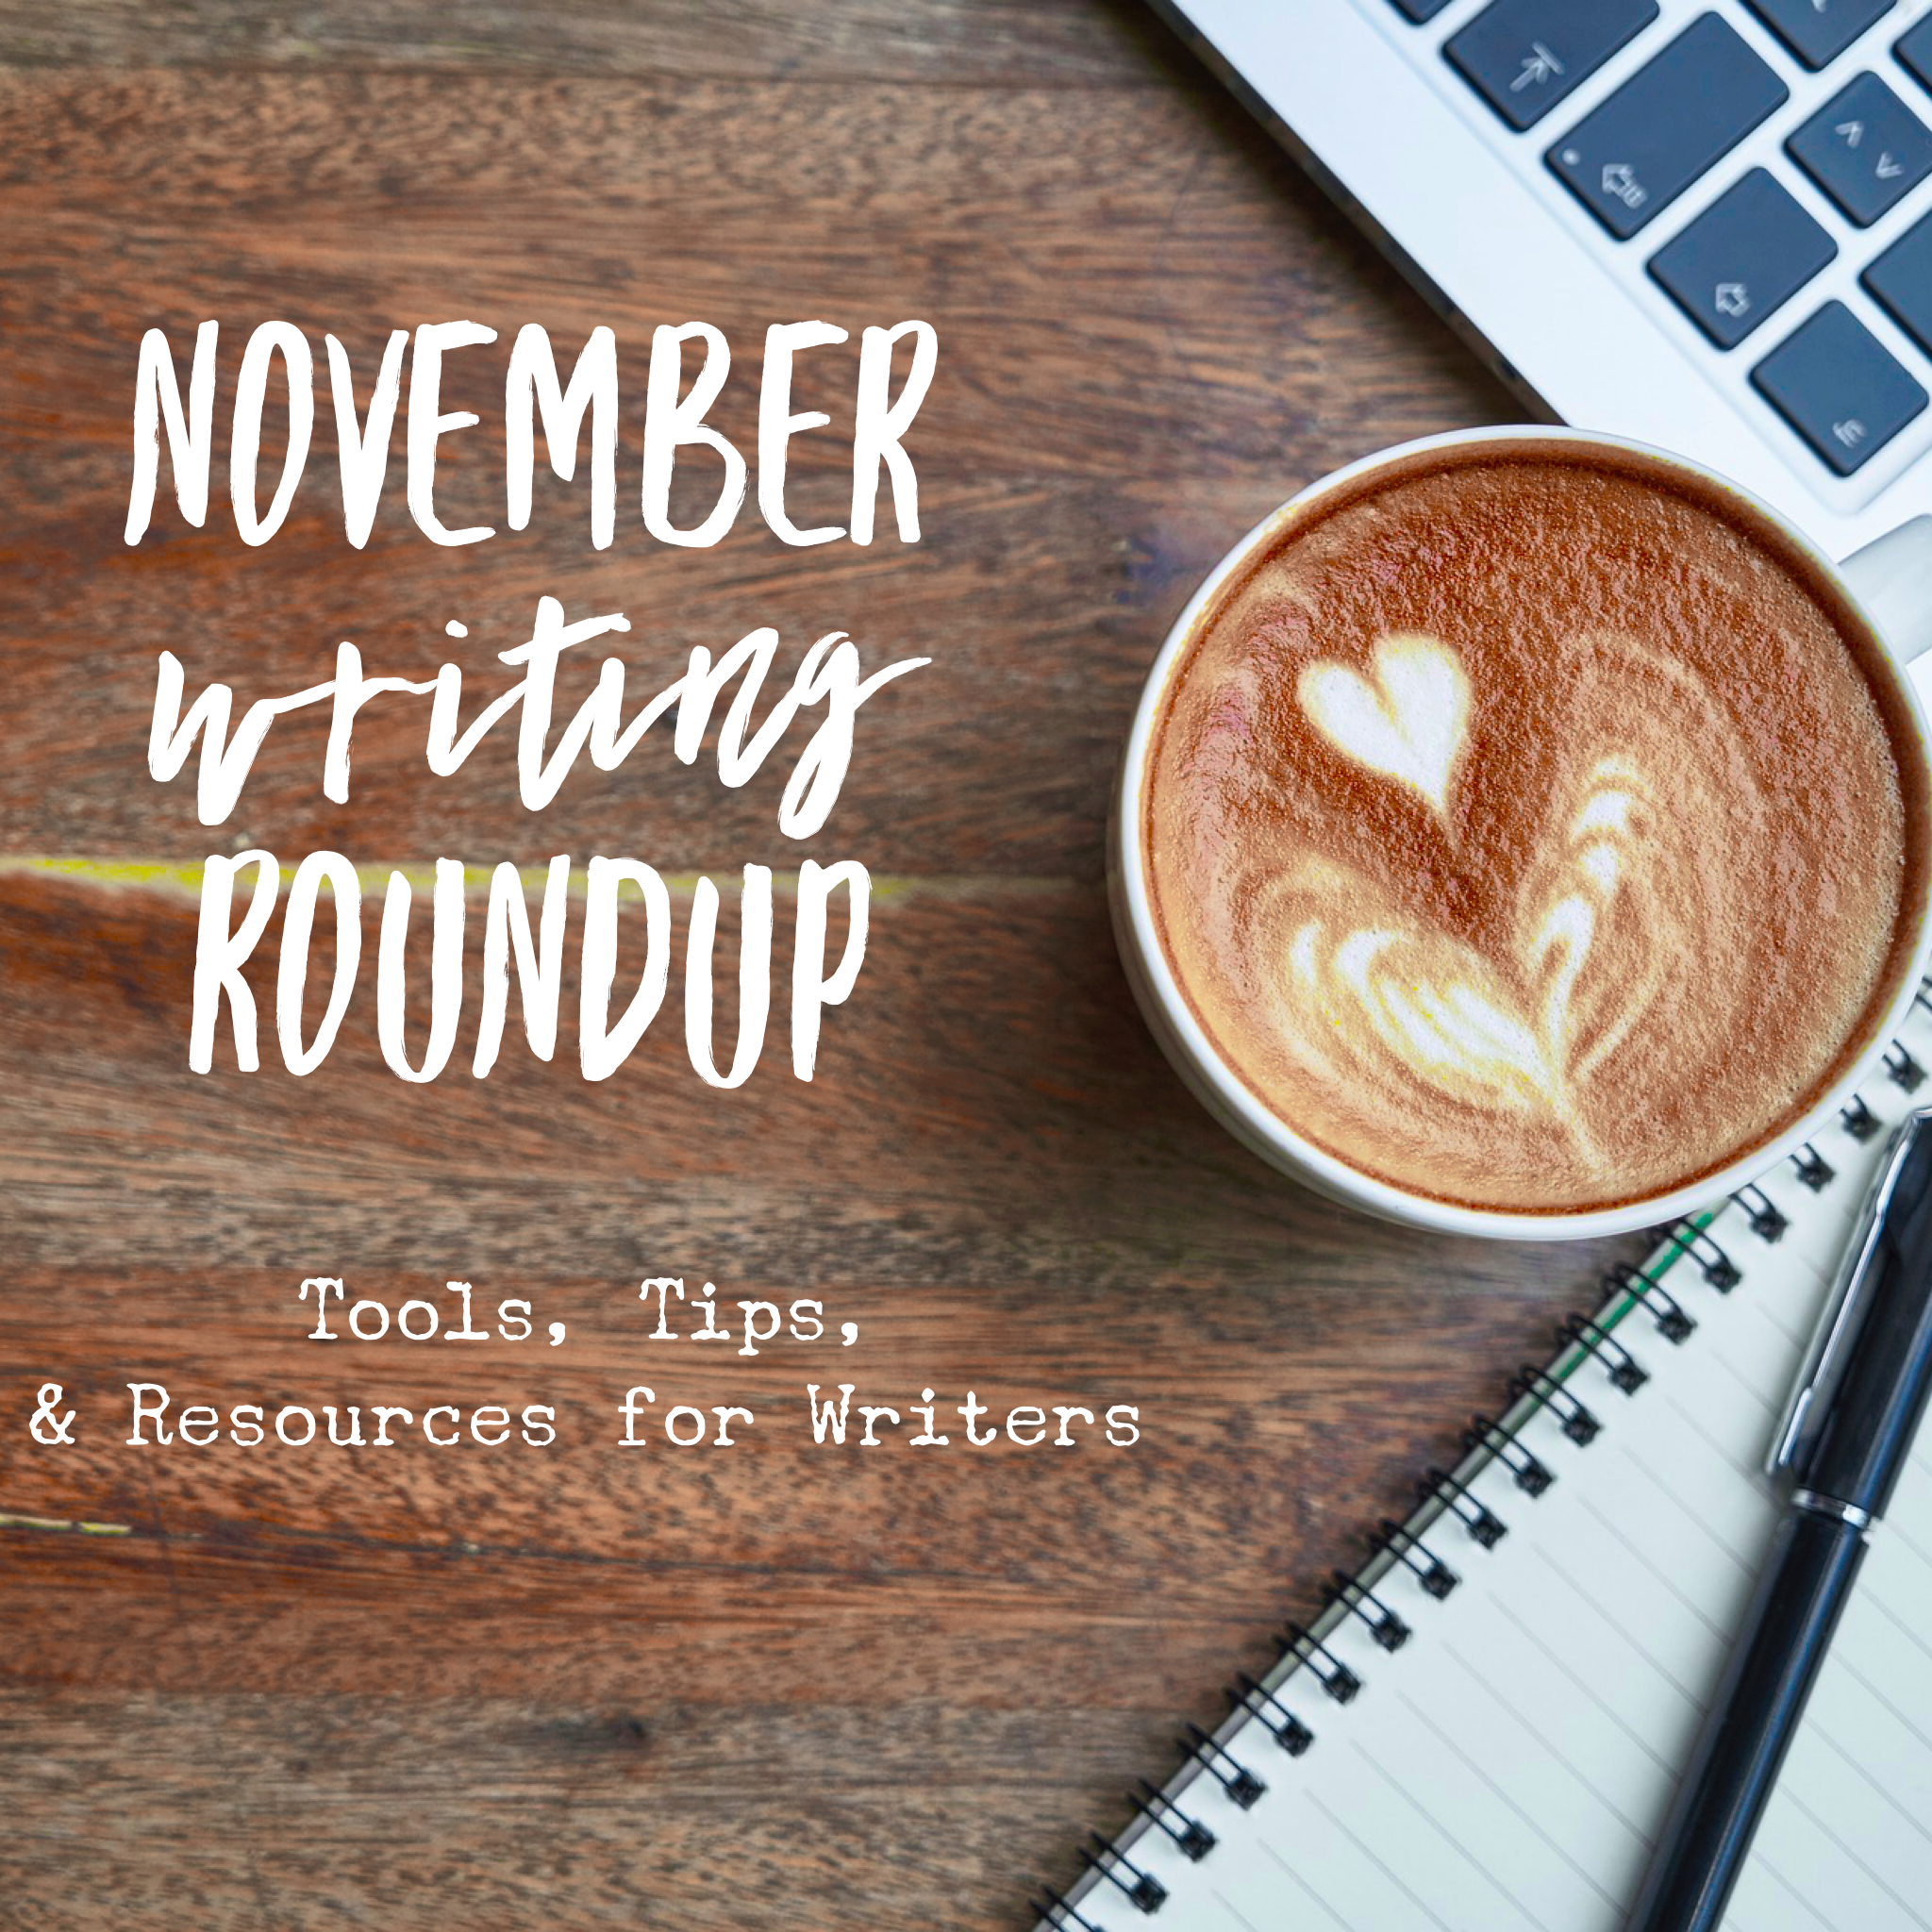 November Writing Roundup: Tools, Tips, and Resources for Writers by Diana Anderson-Tyler